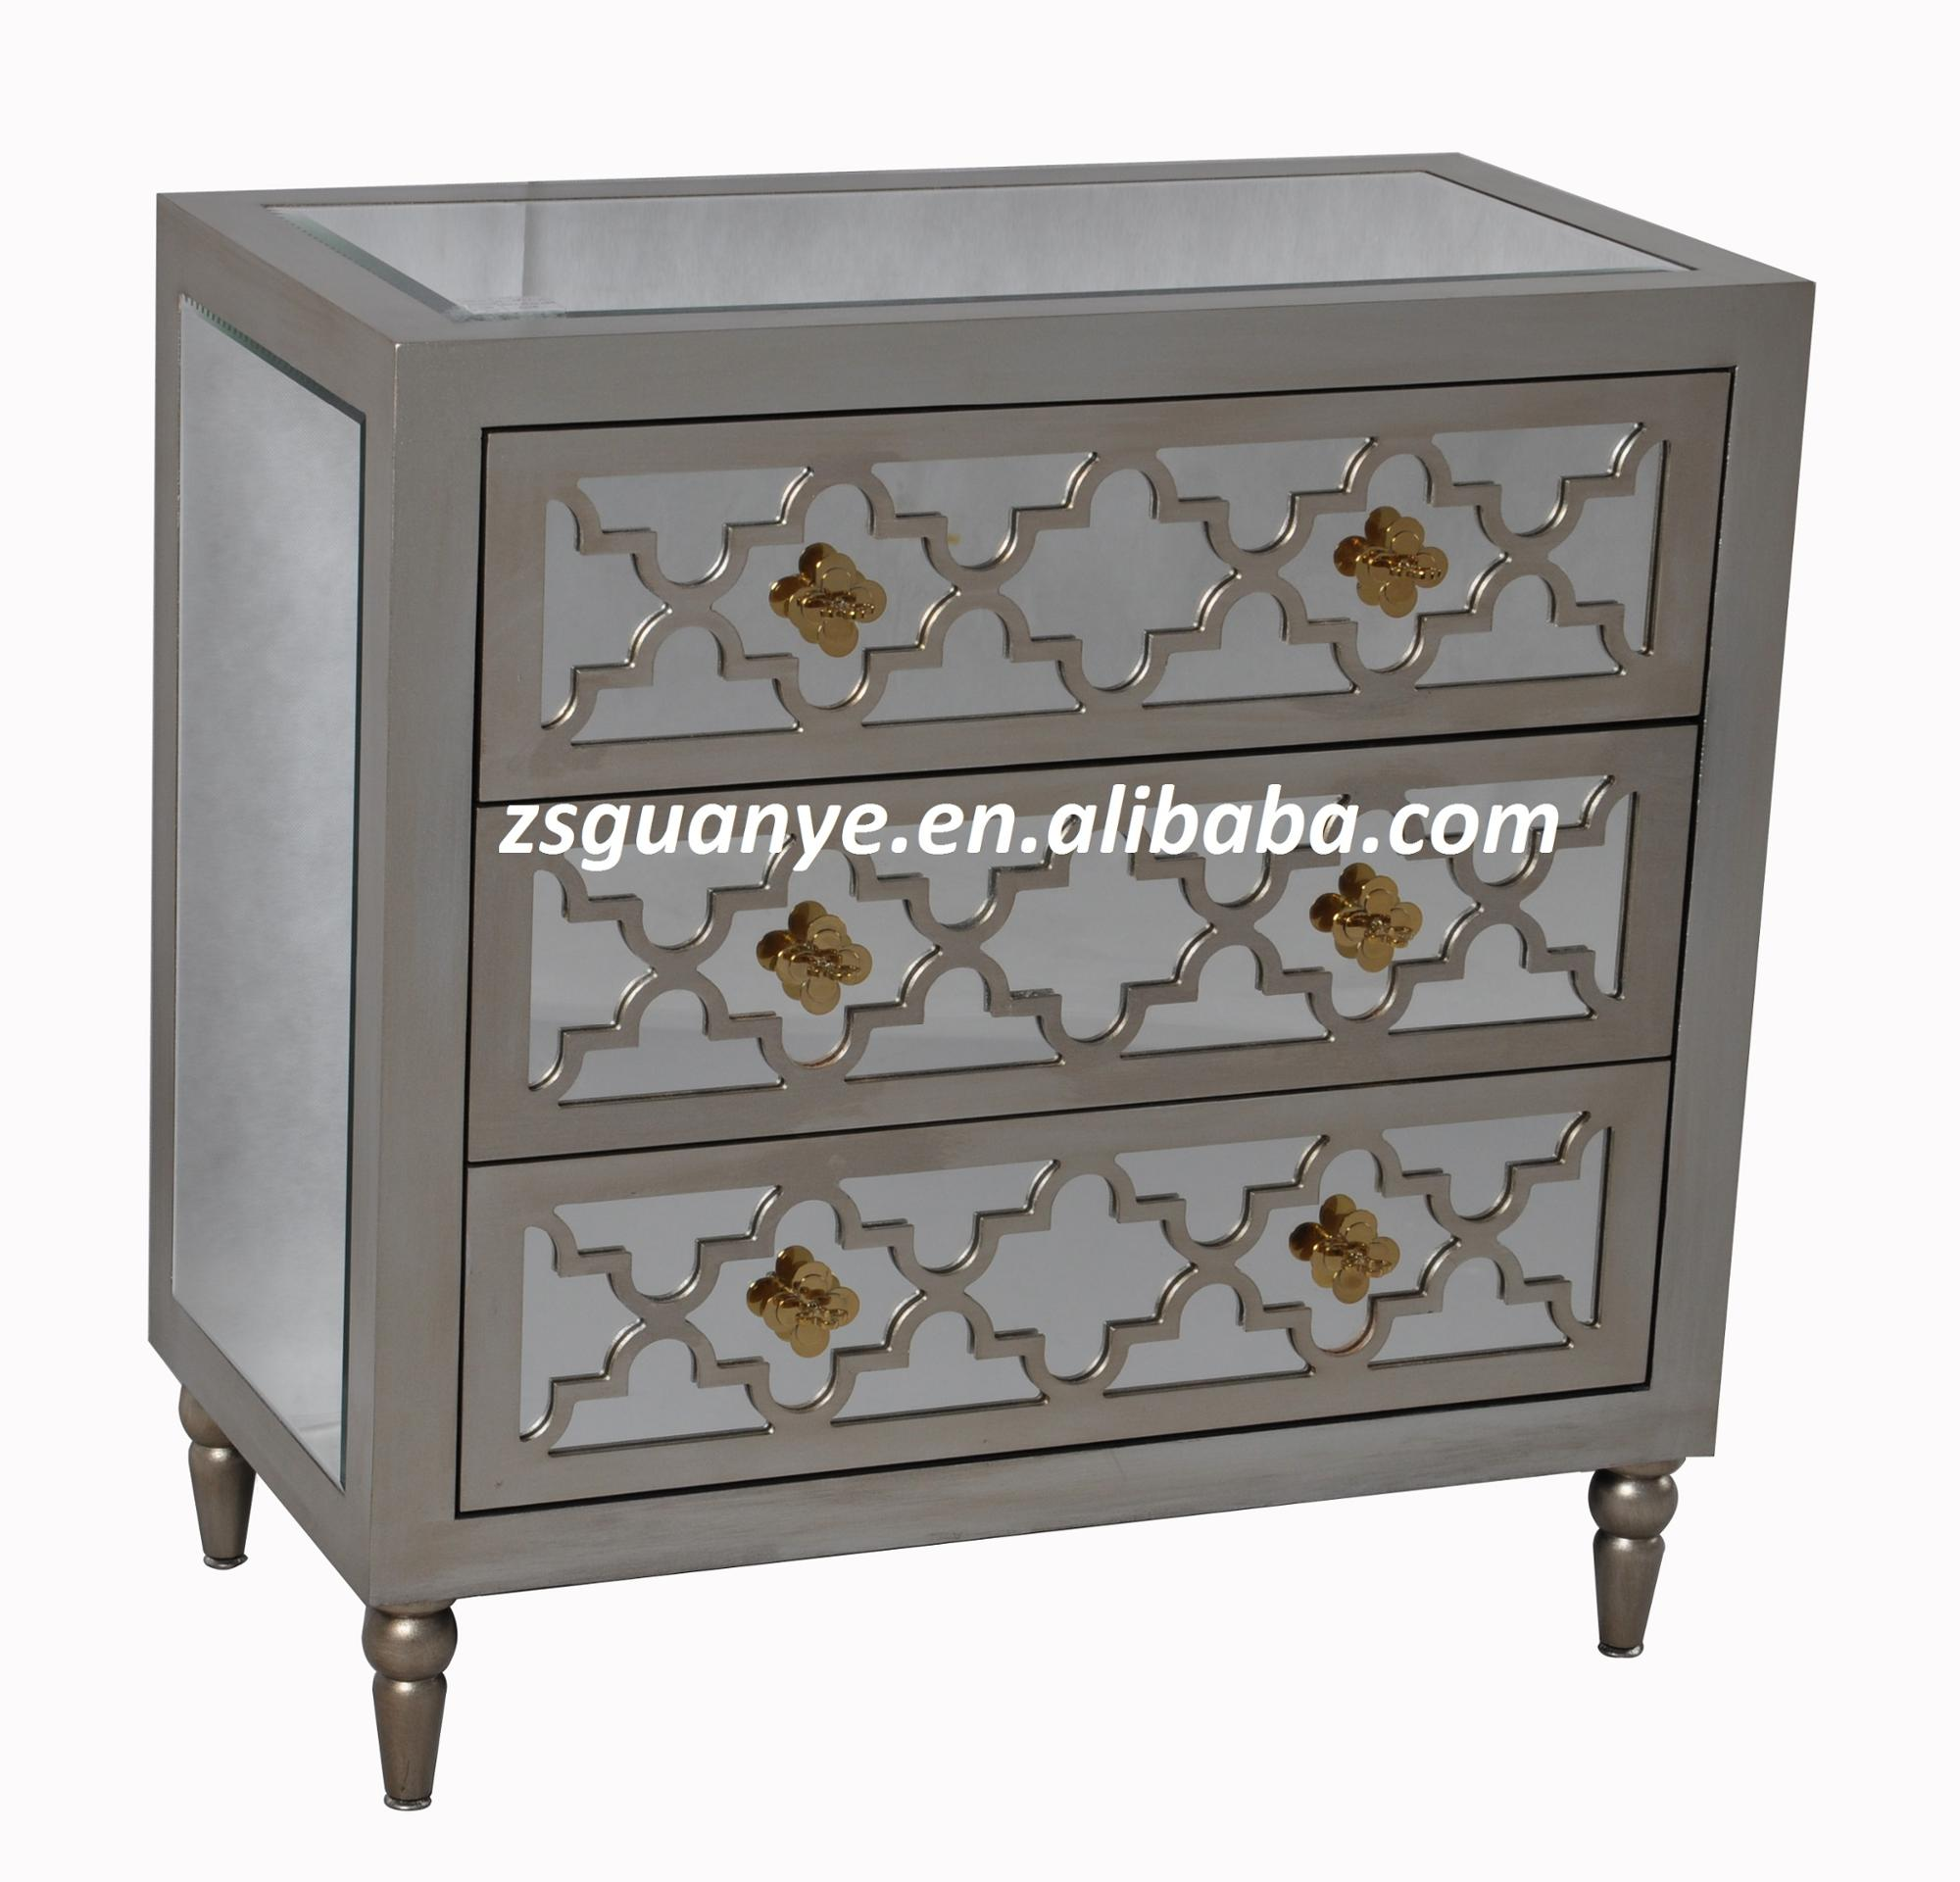 winsome gold metal accent cabinet small suppliers target and mirimyn cabinets door legs white kitchen latches for inserts black one storage doors locks vanity windham bayside